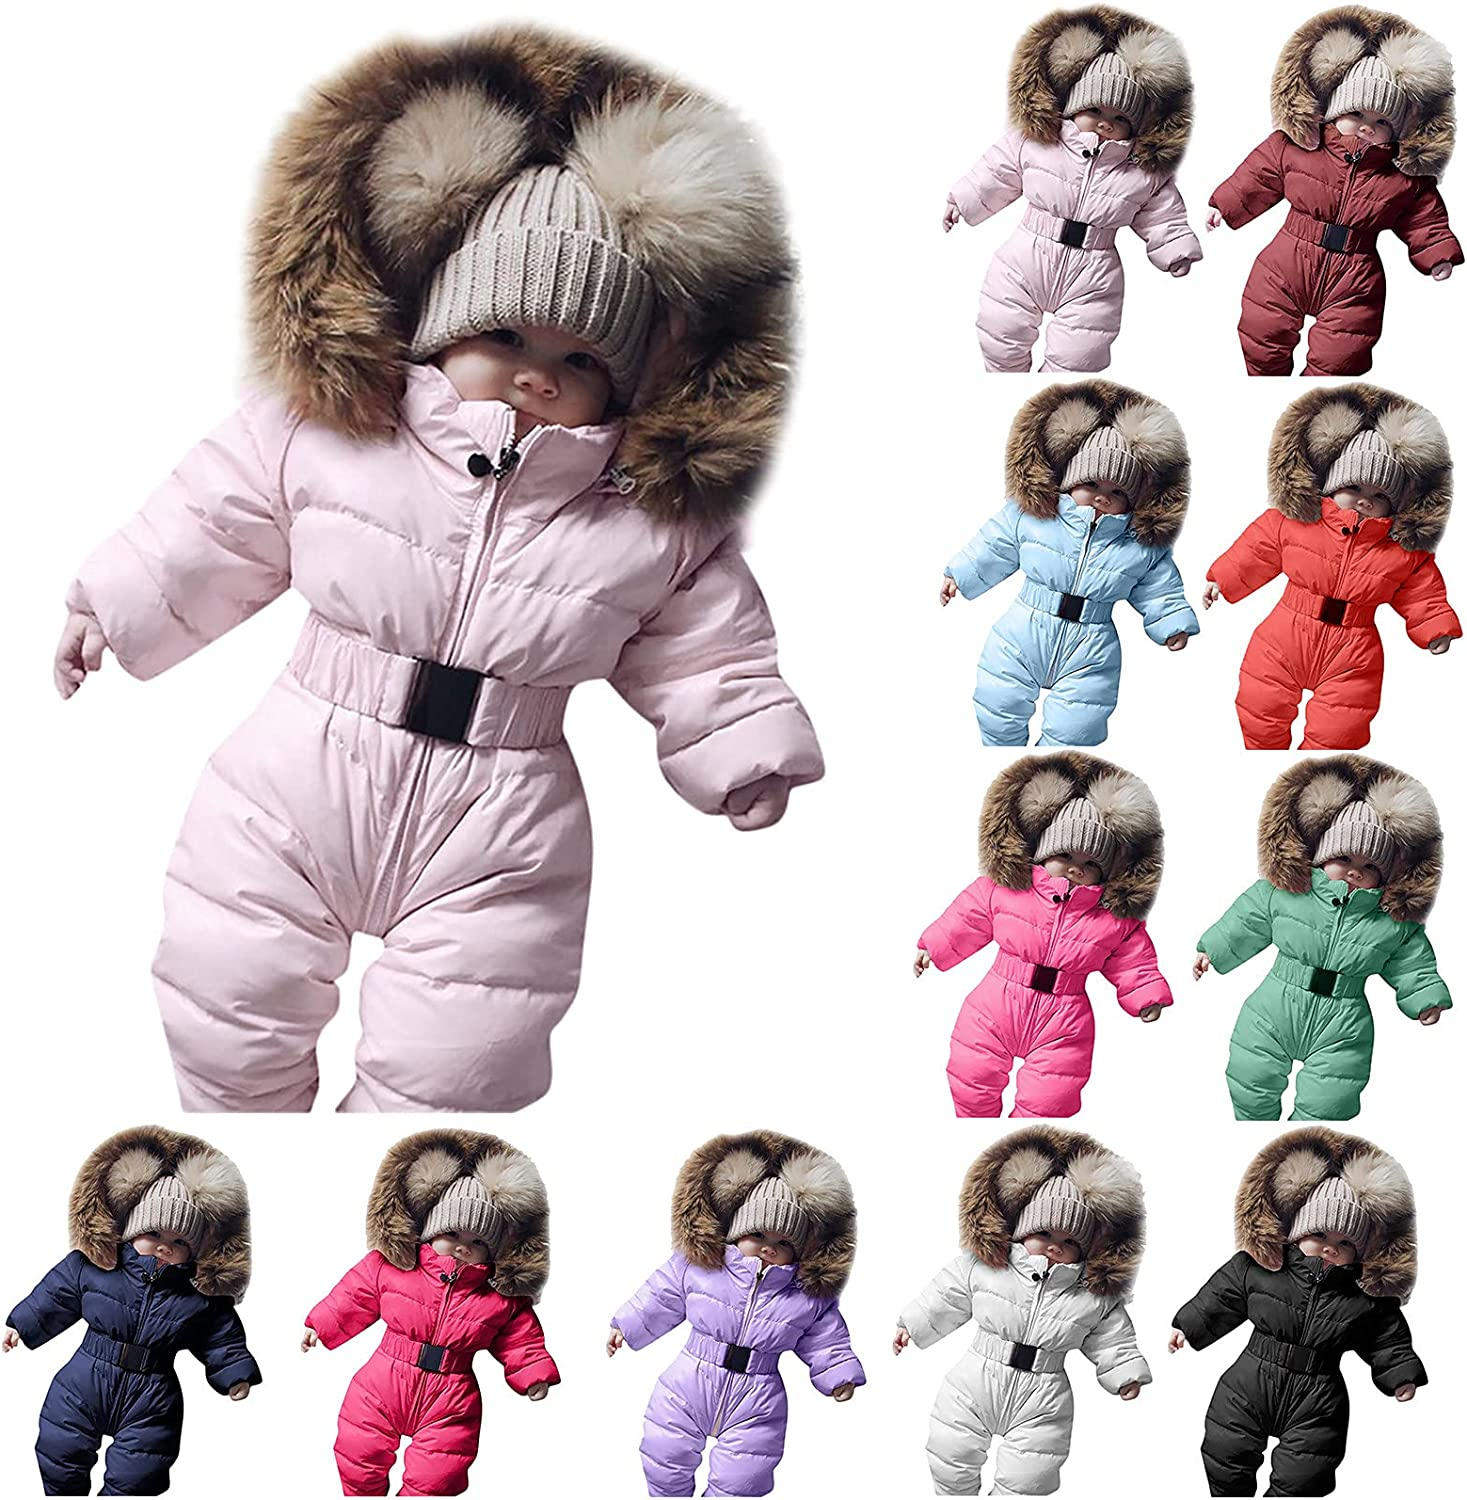 Infant Girls Max 79% OFF Denver Mall Boys Coat Long Sleeves Warm Winter Down Windproof Z